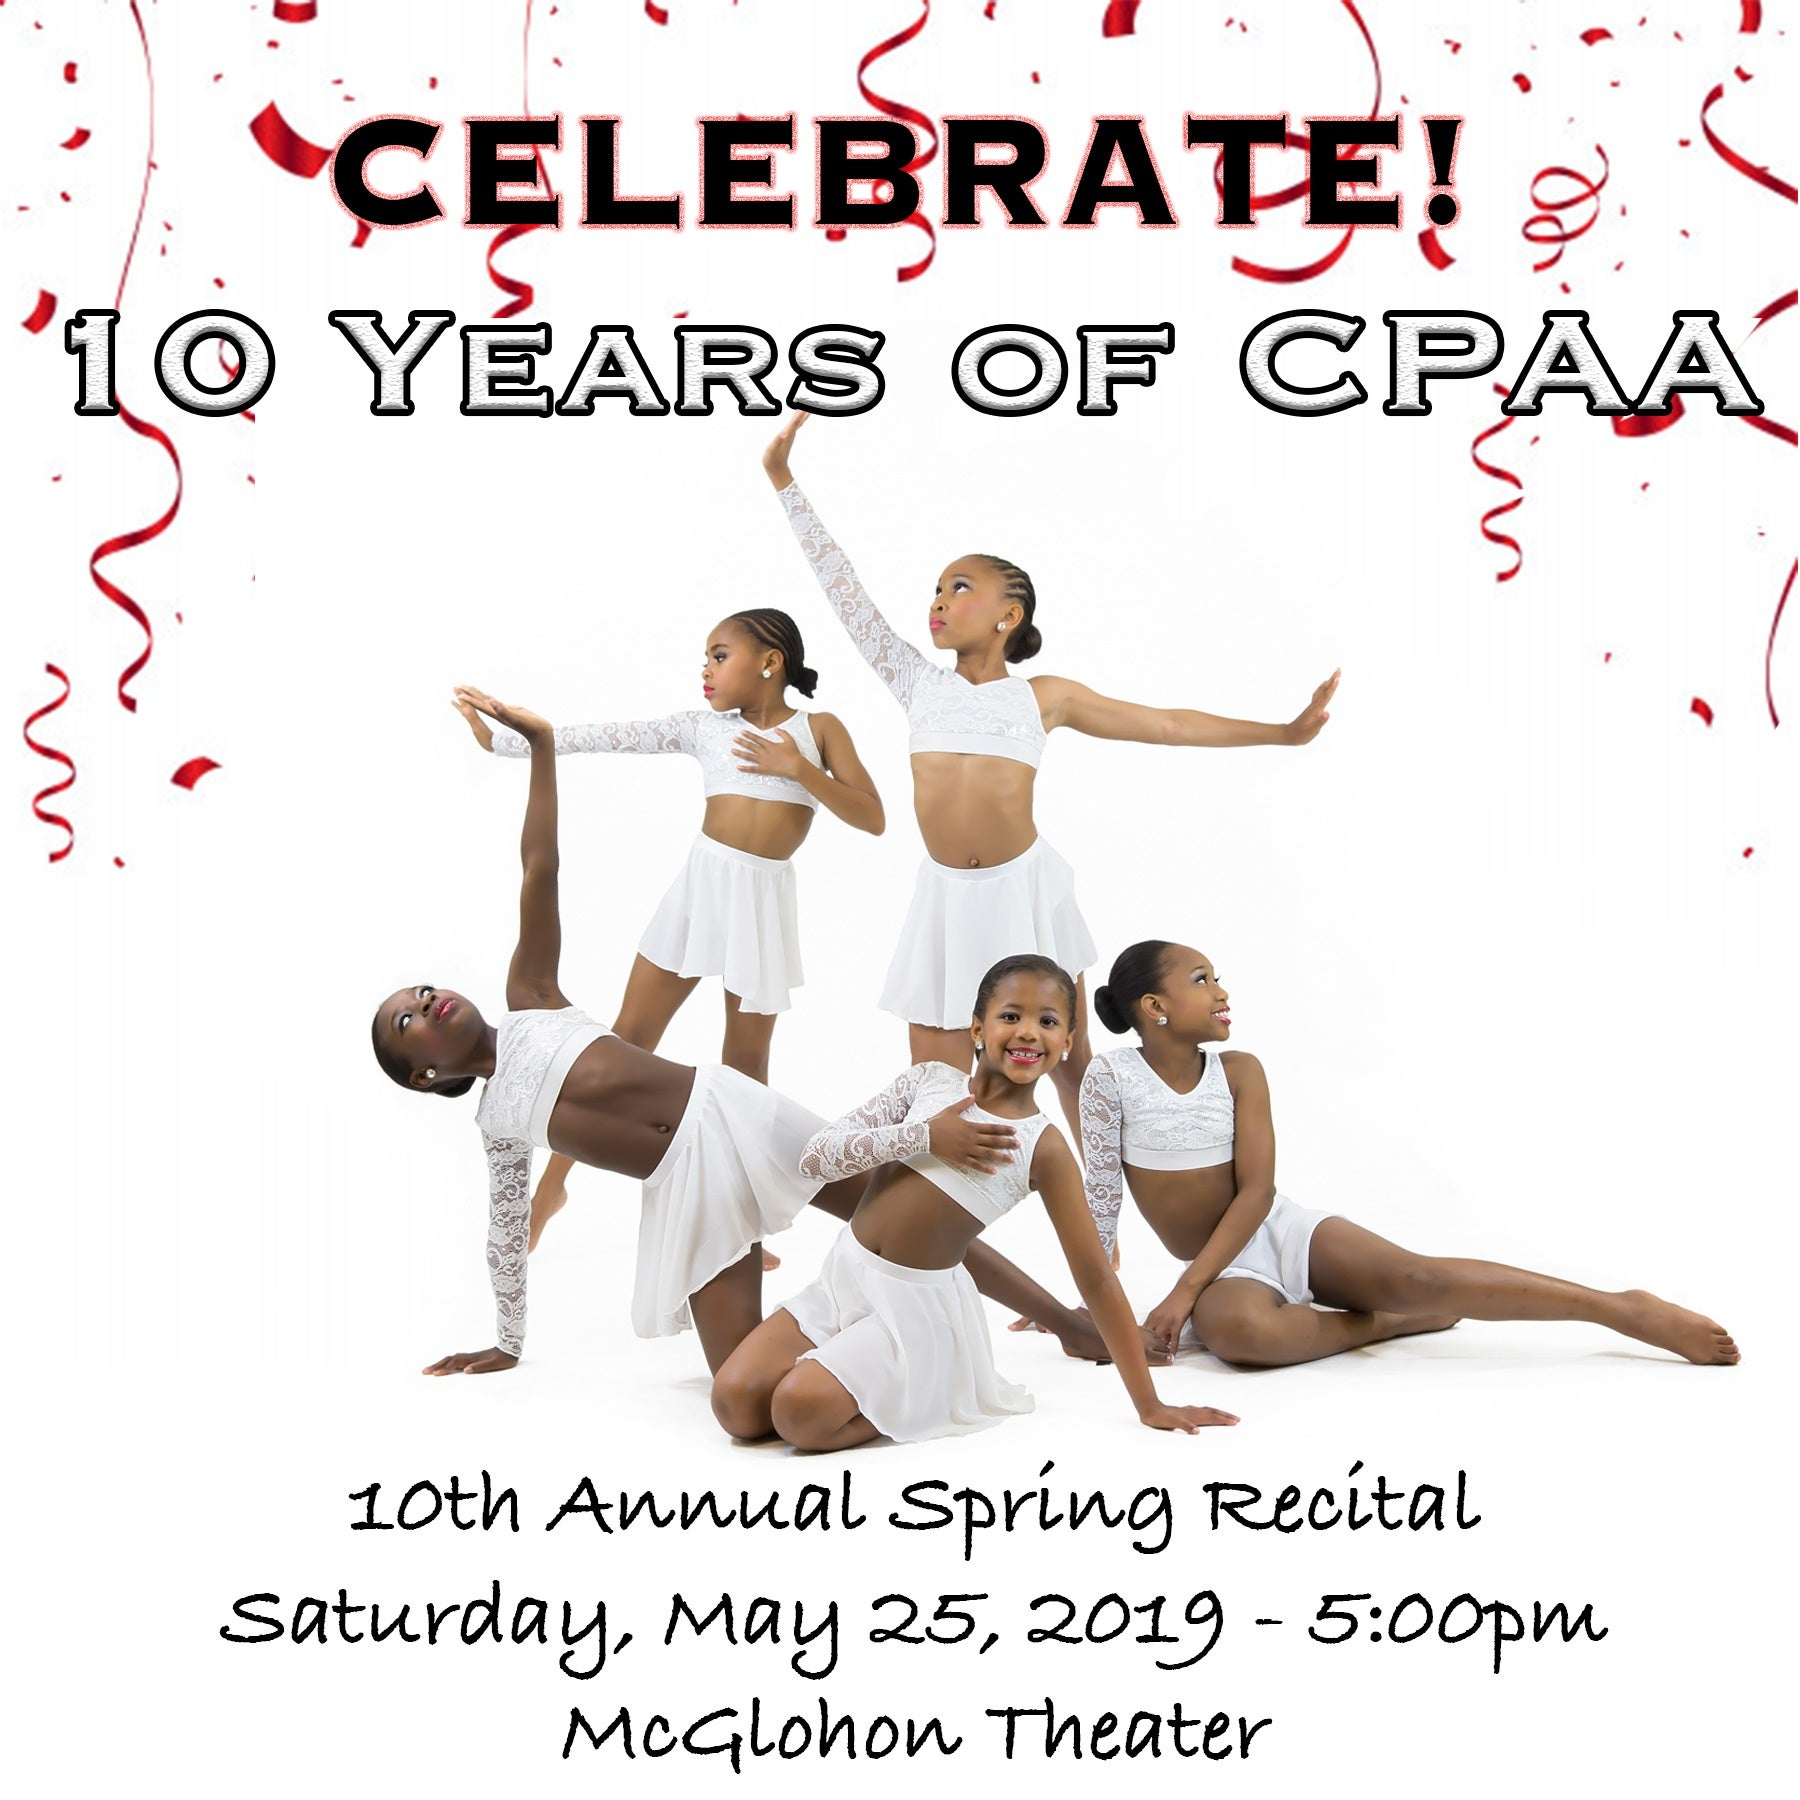 Celebrate...10 Years of CPAA!